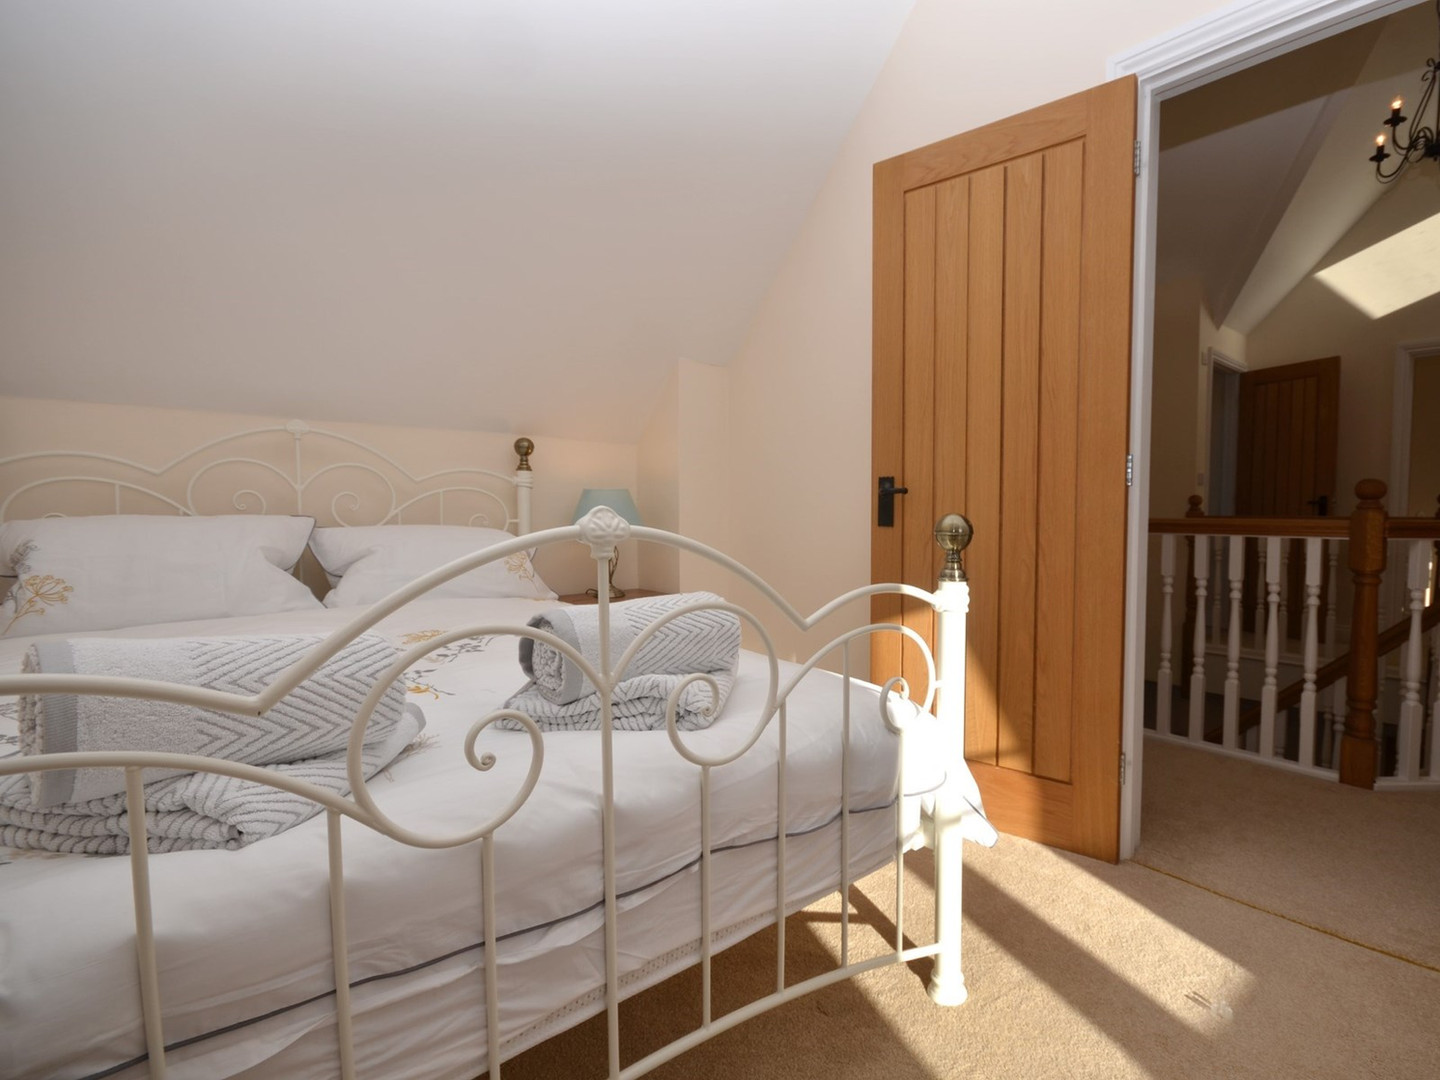 Birch View at Meare - double bedroom 5.j